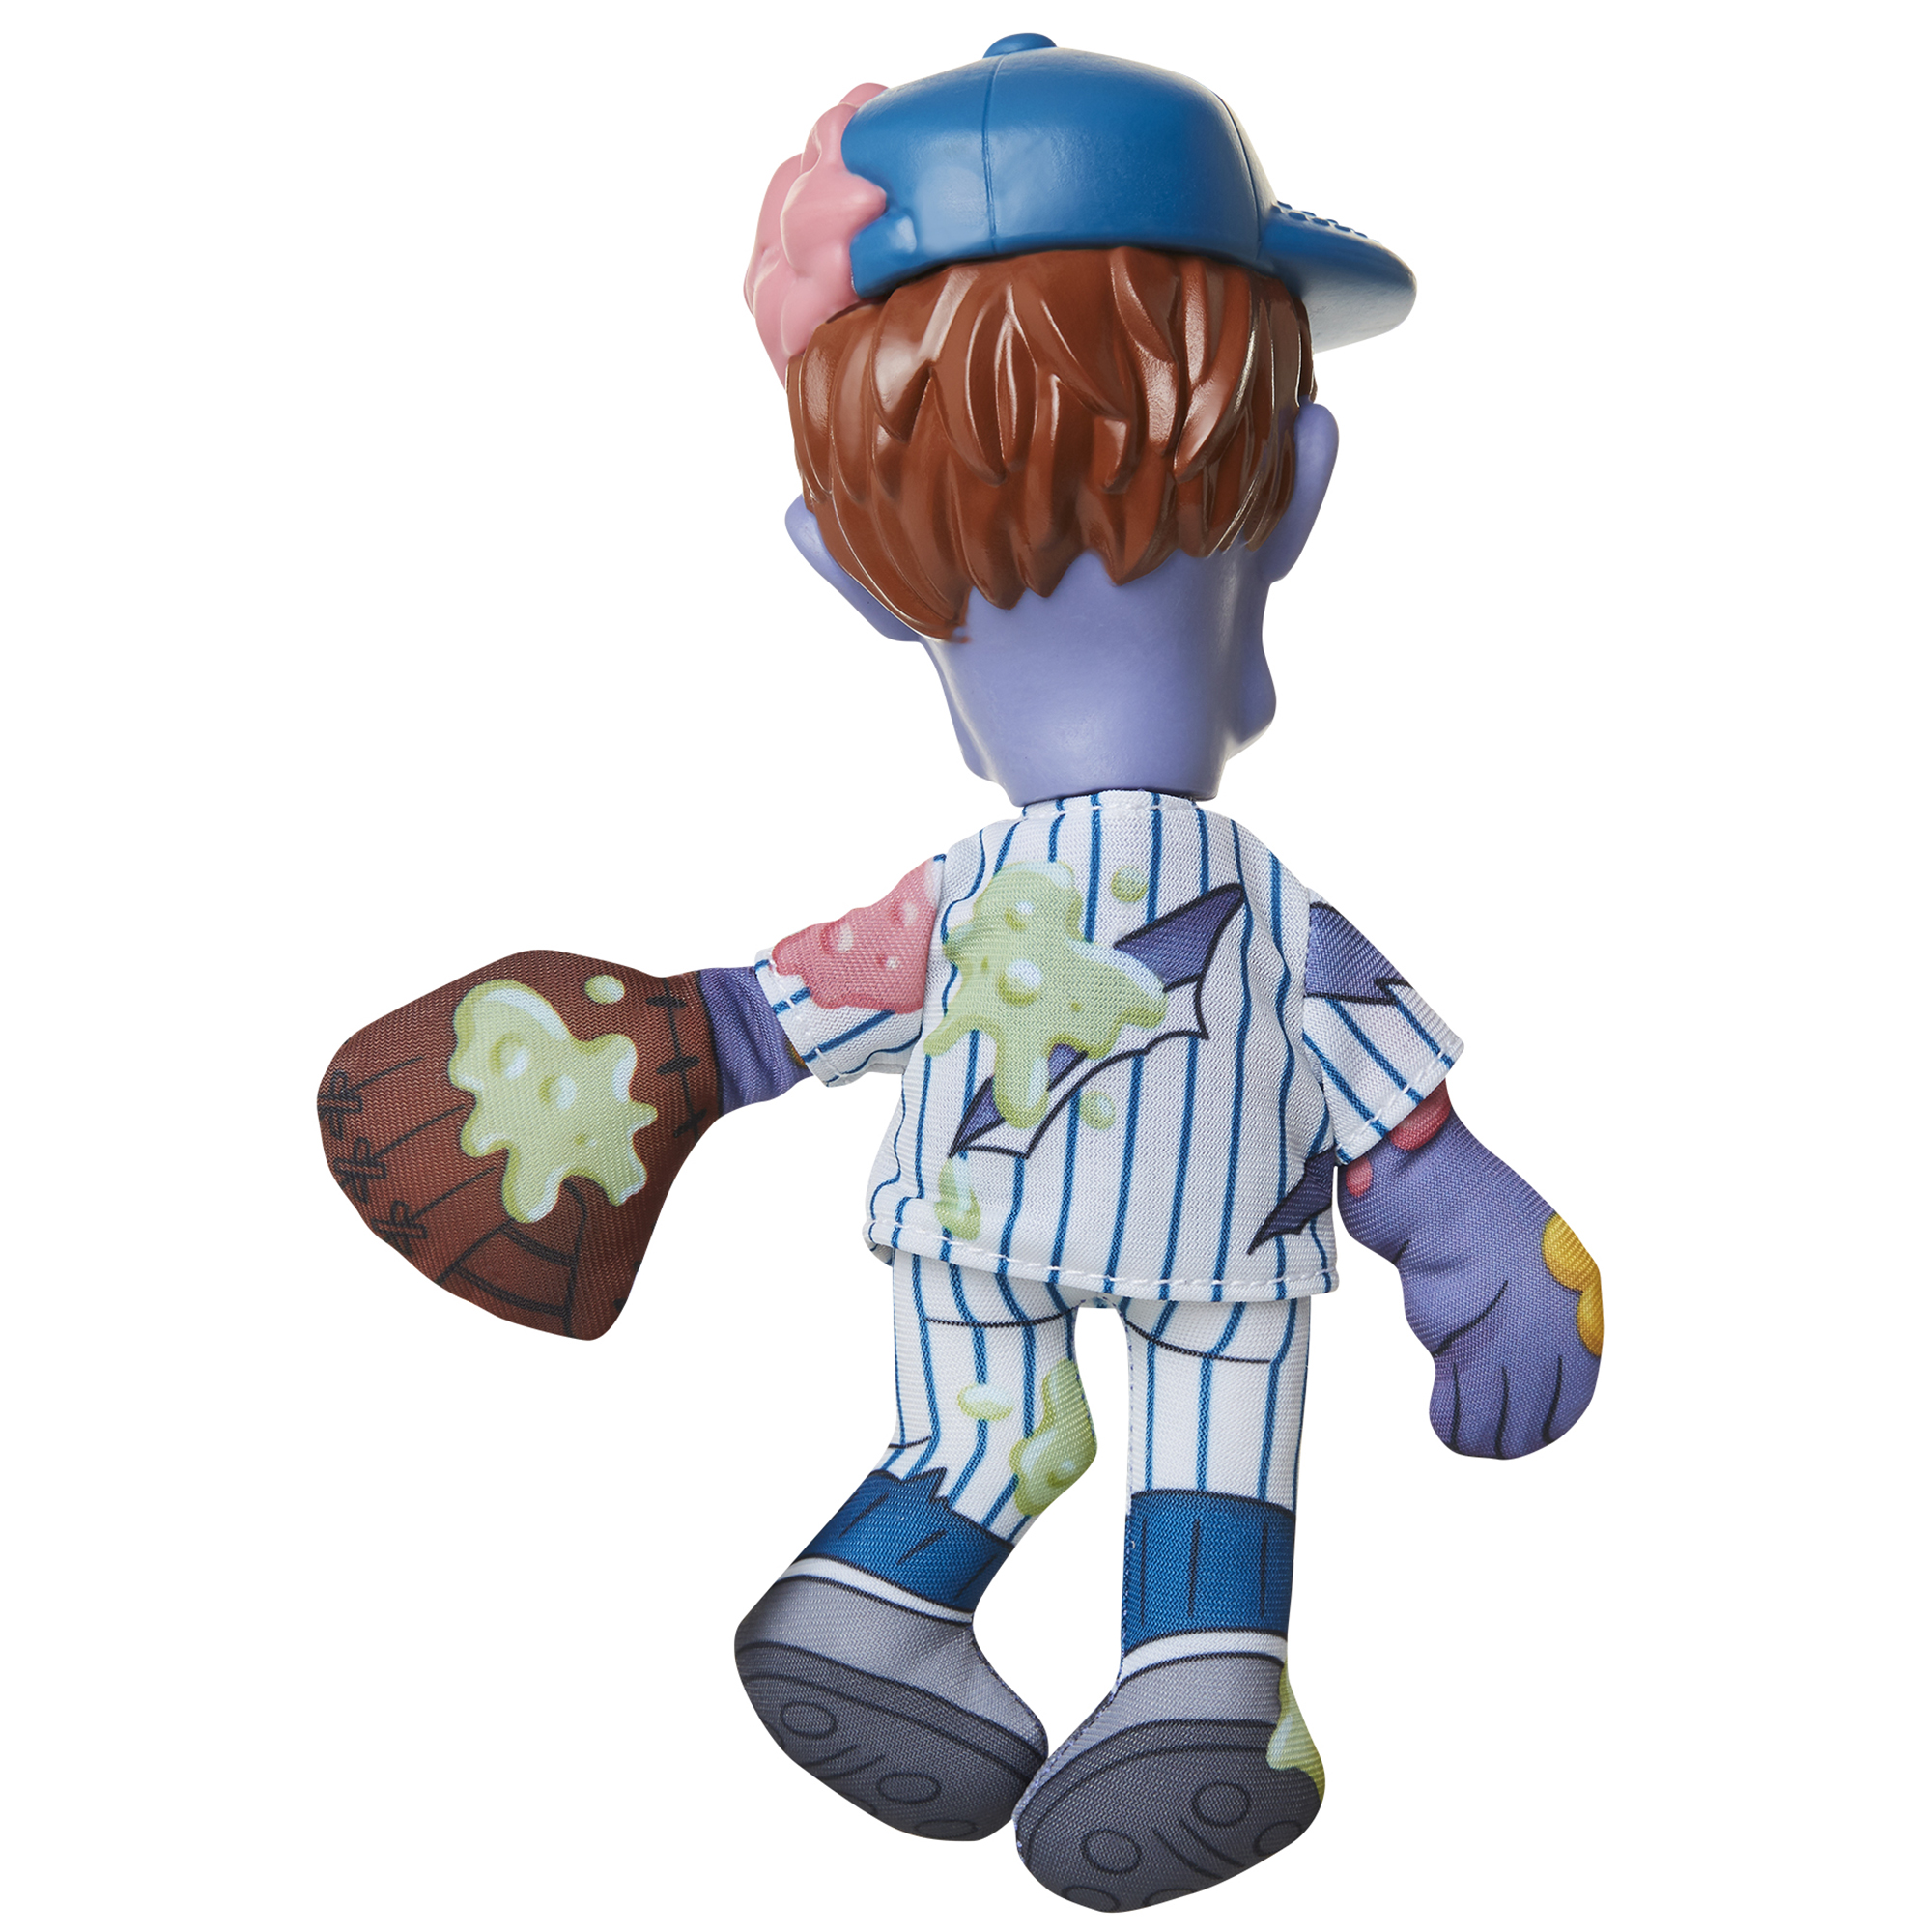 Baseball Guy Zombie Plush Assortment 1